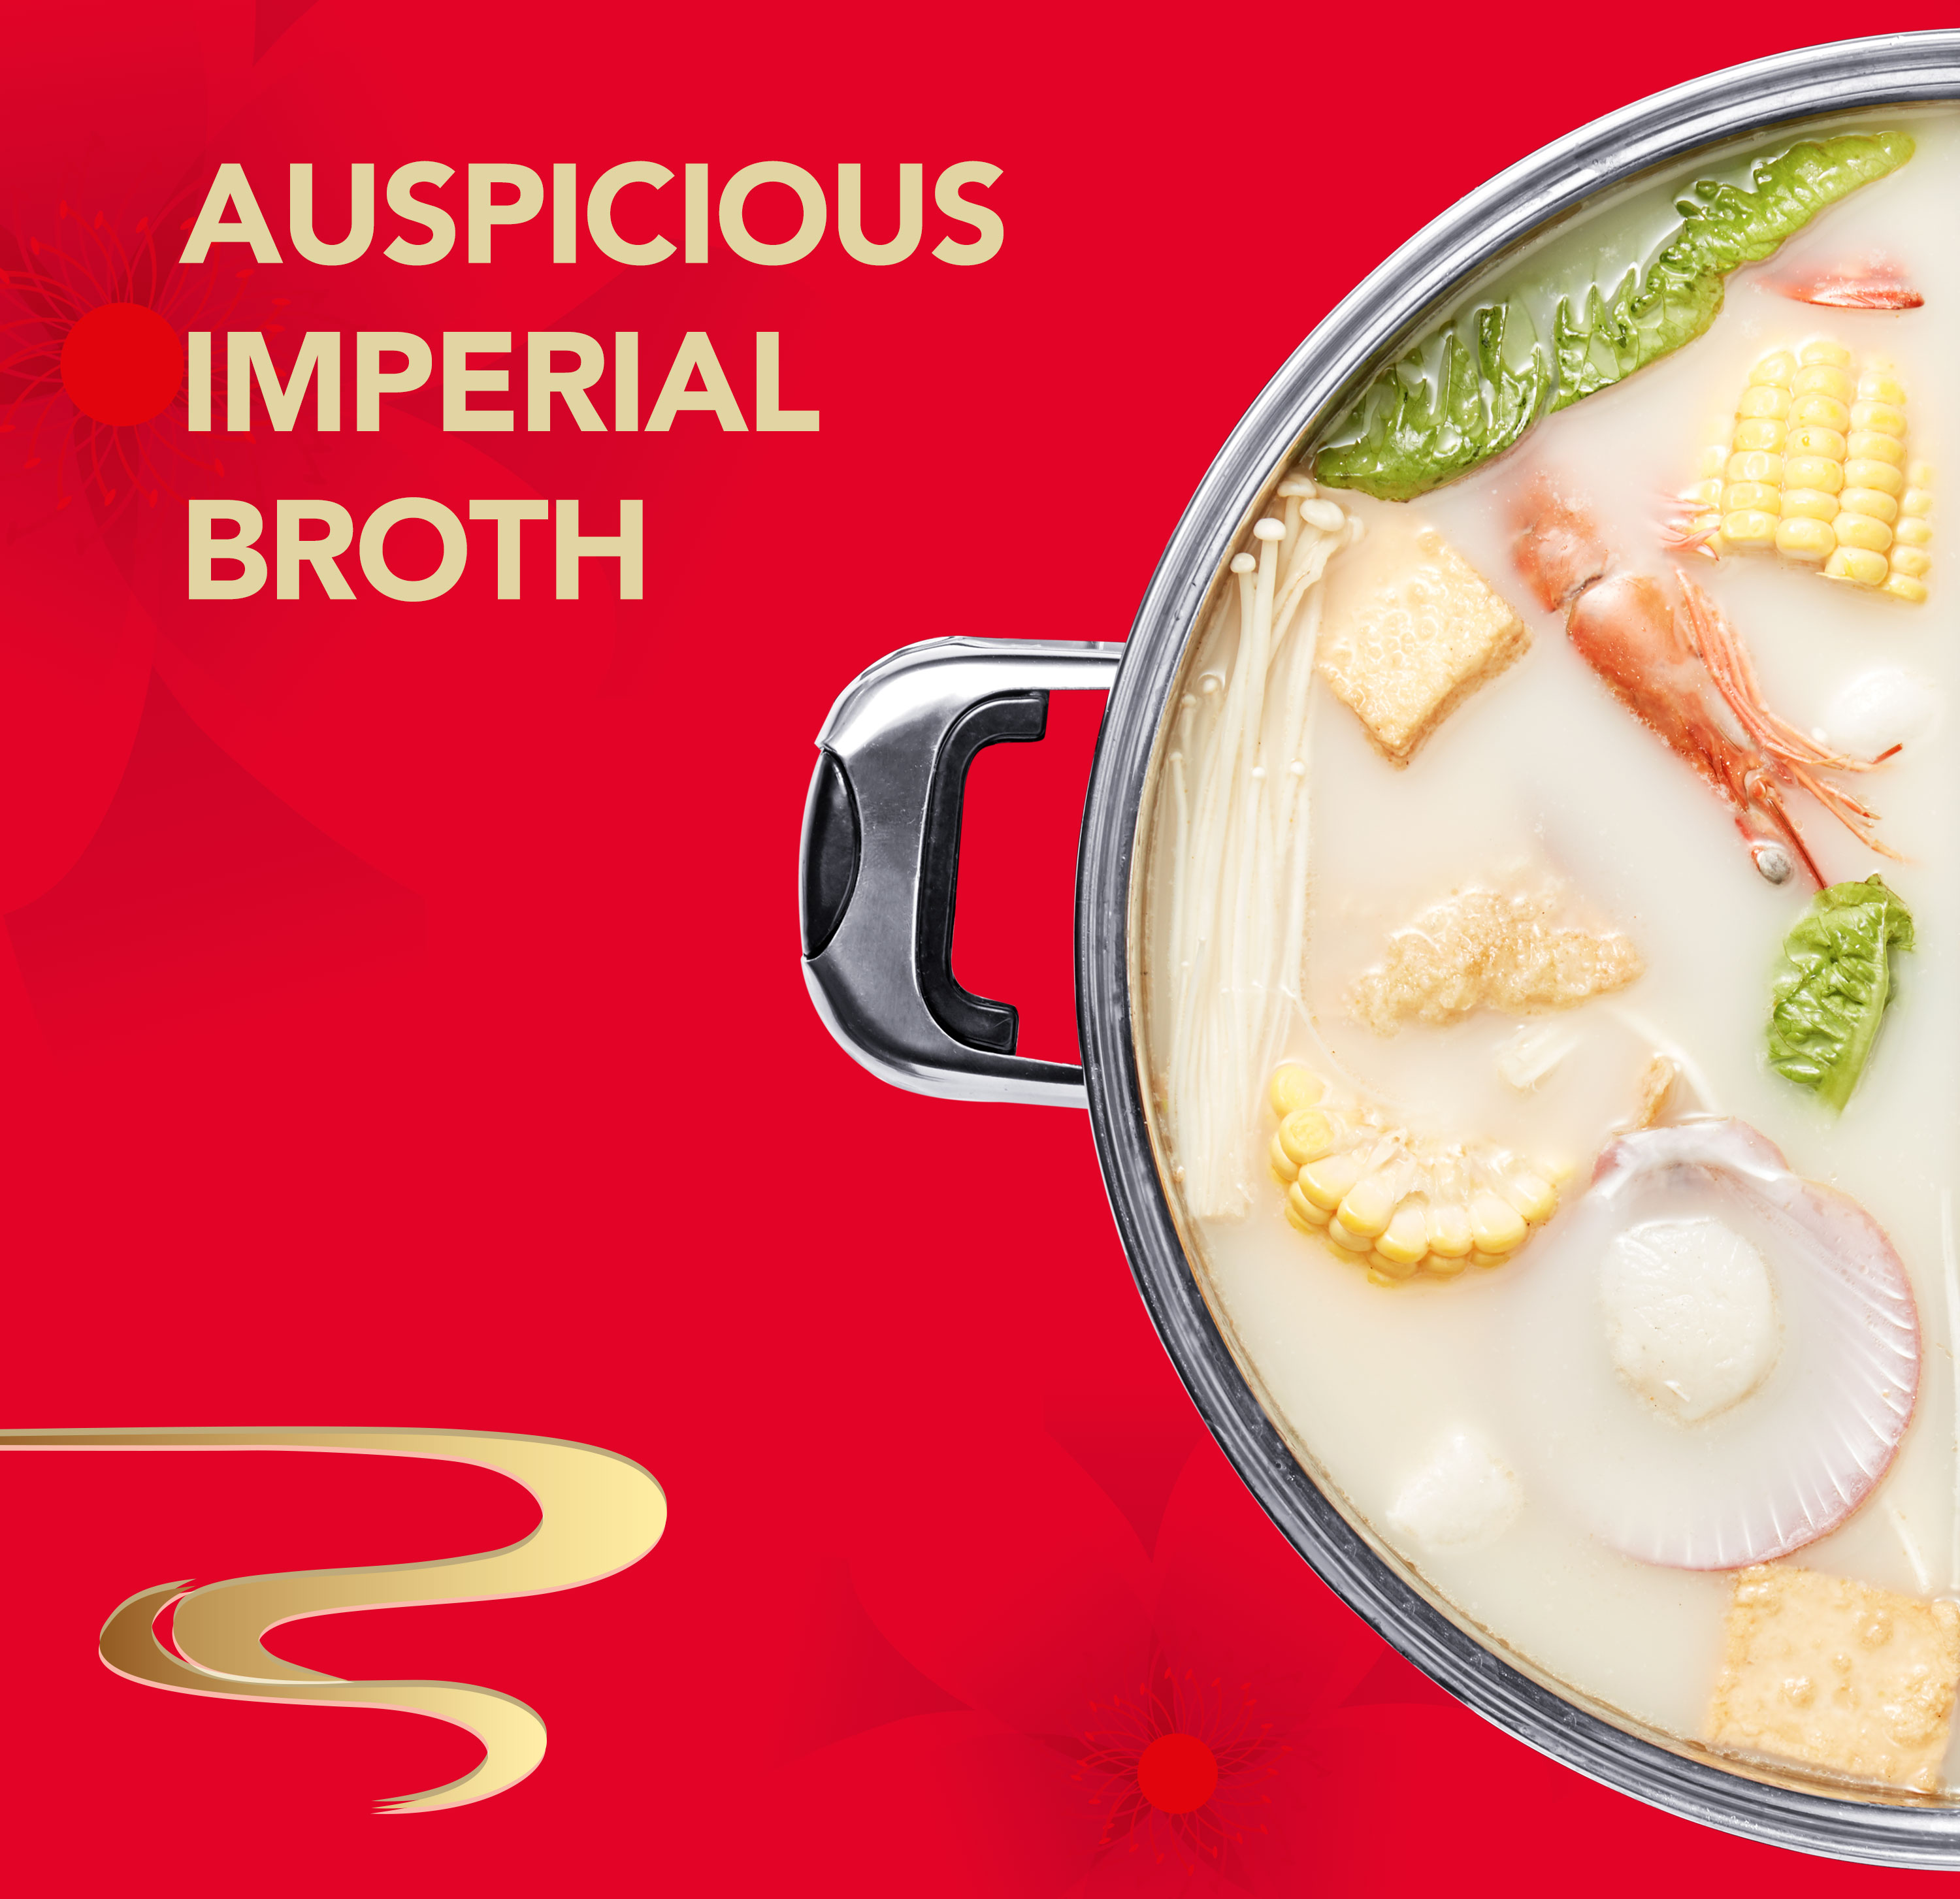 Auspicious Imperial Broth